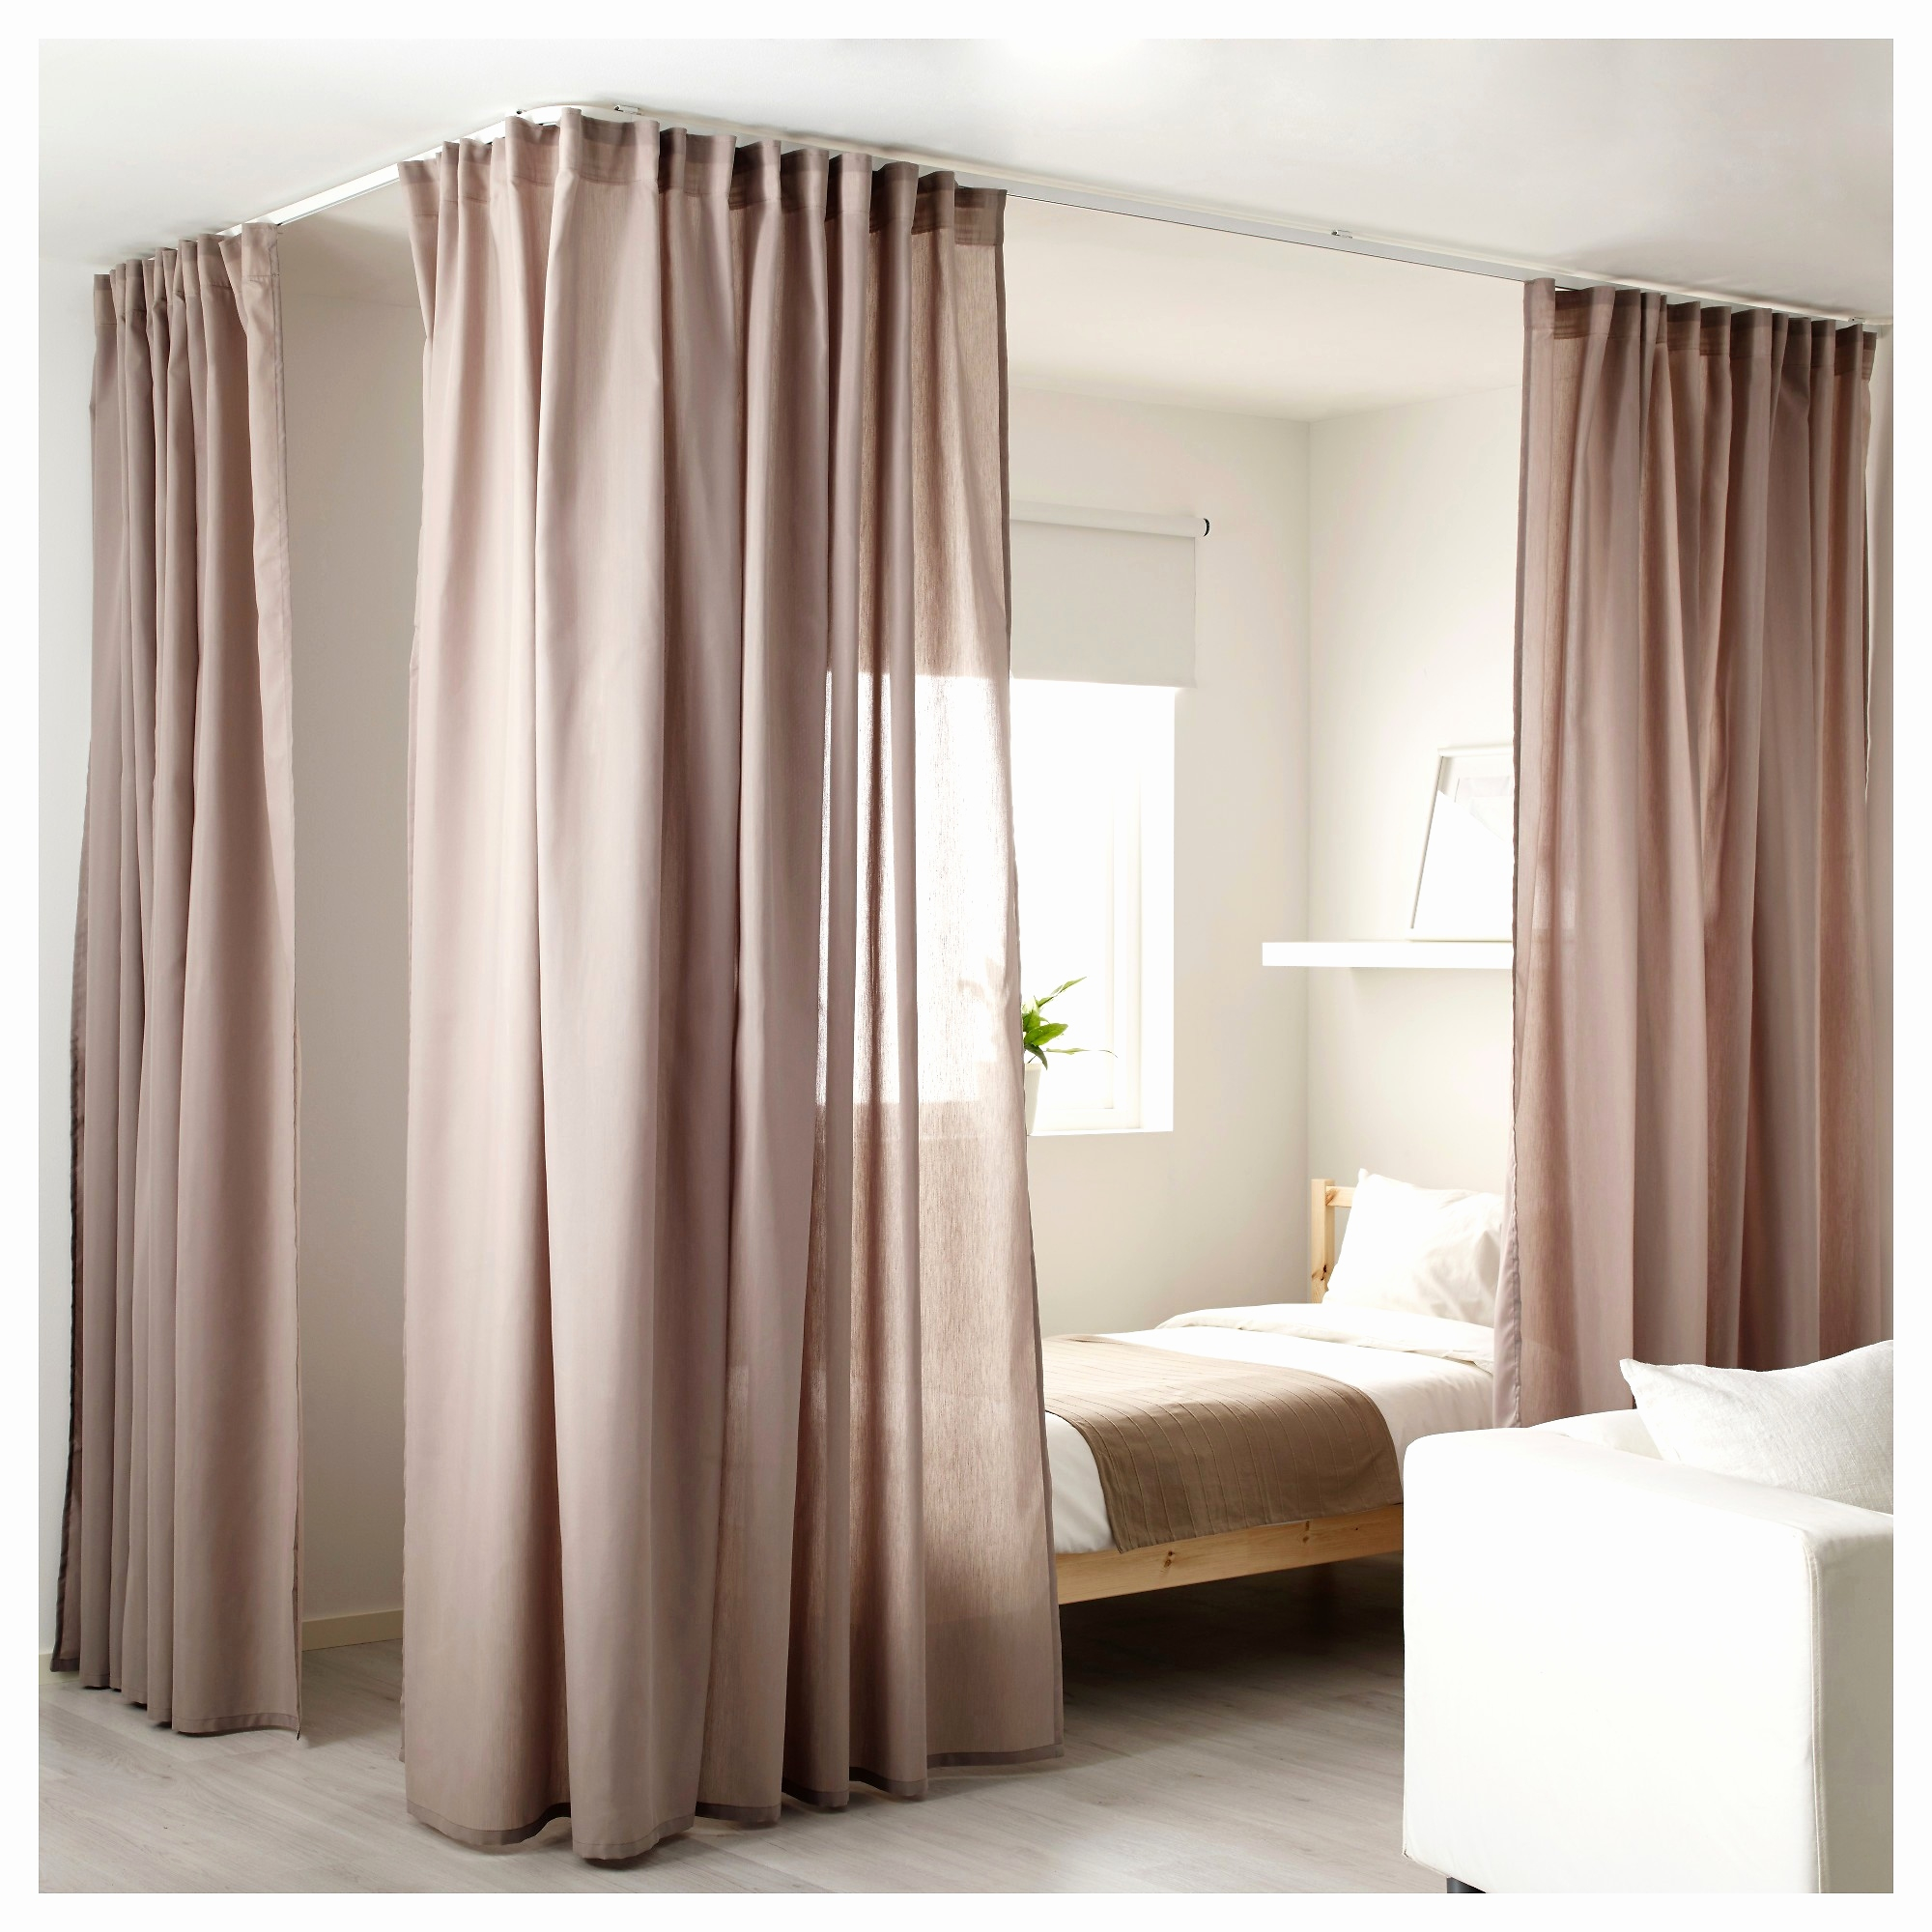 30 Awesome Travel Trailer Shower Curtain Home Furniture Ideas for dimensions 2000 X 2000